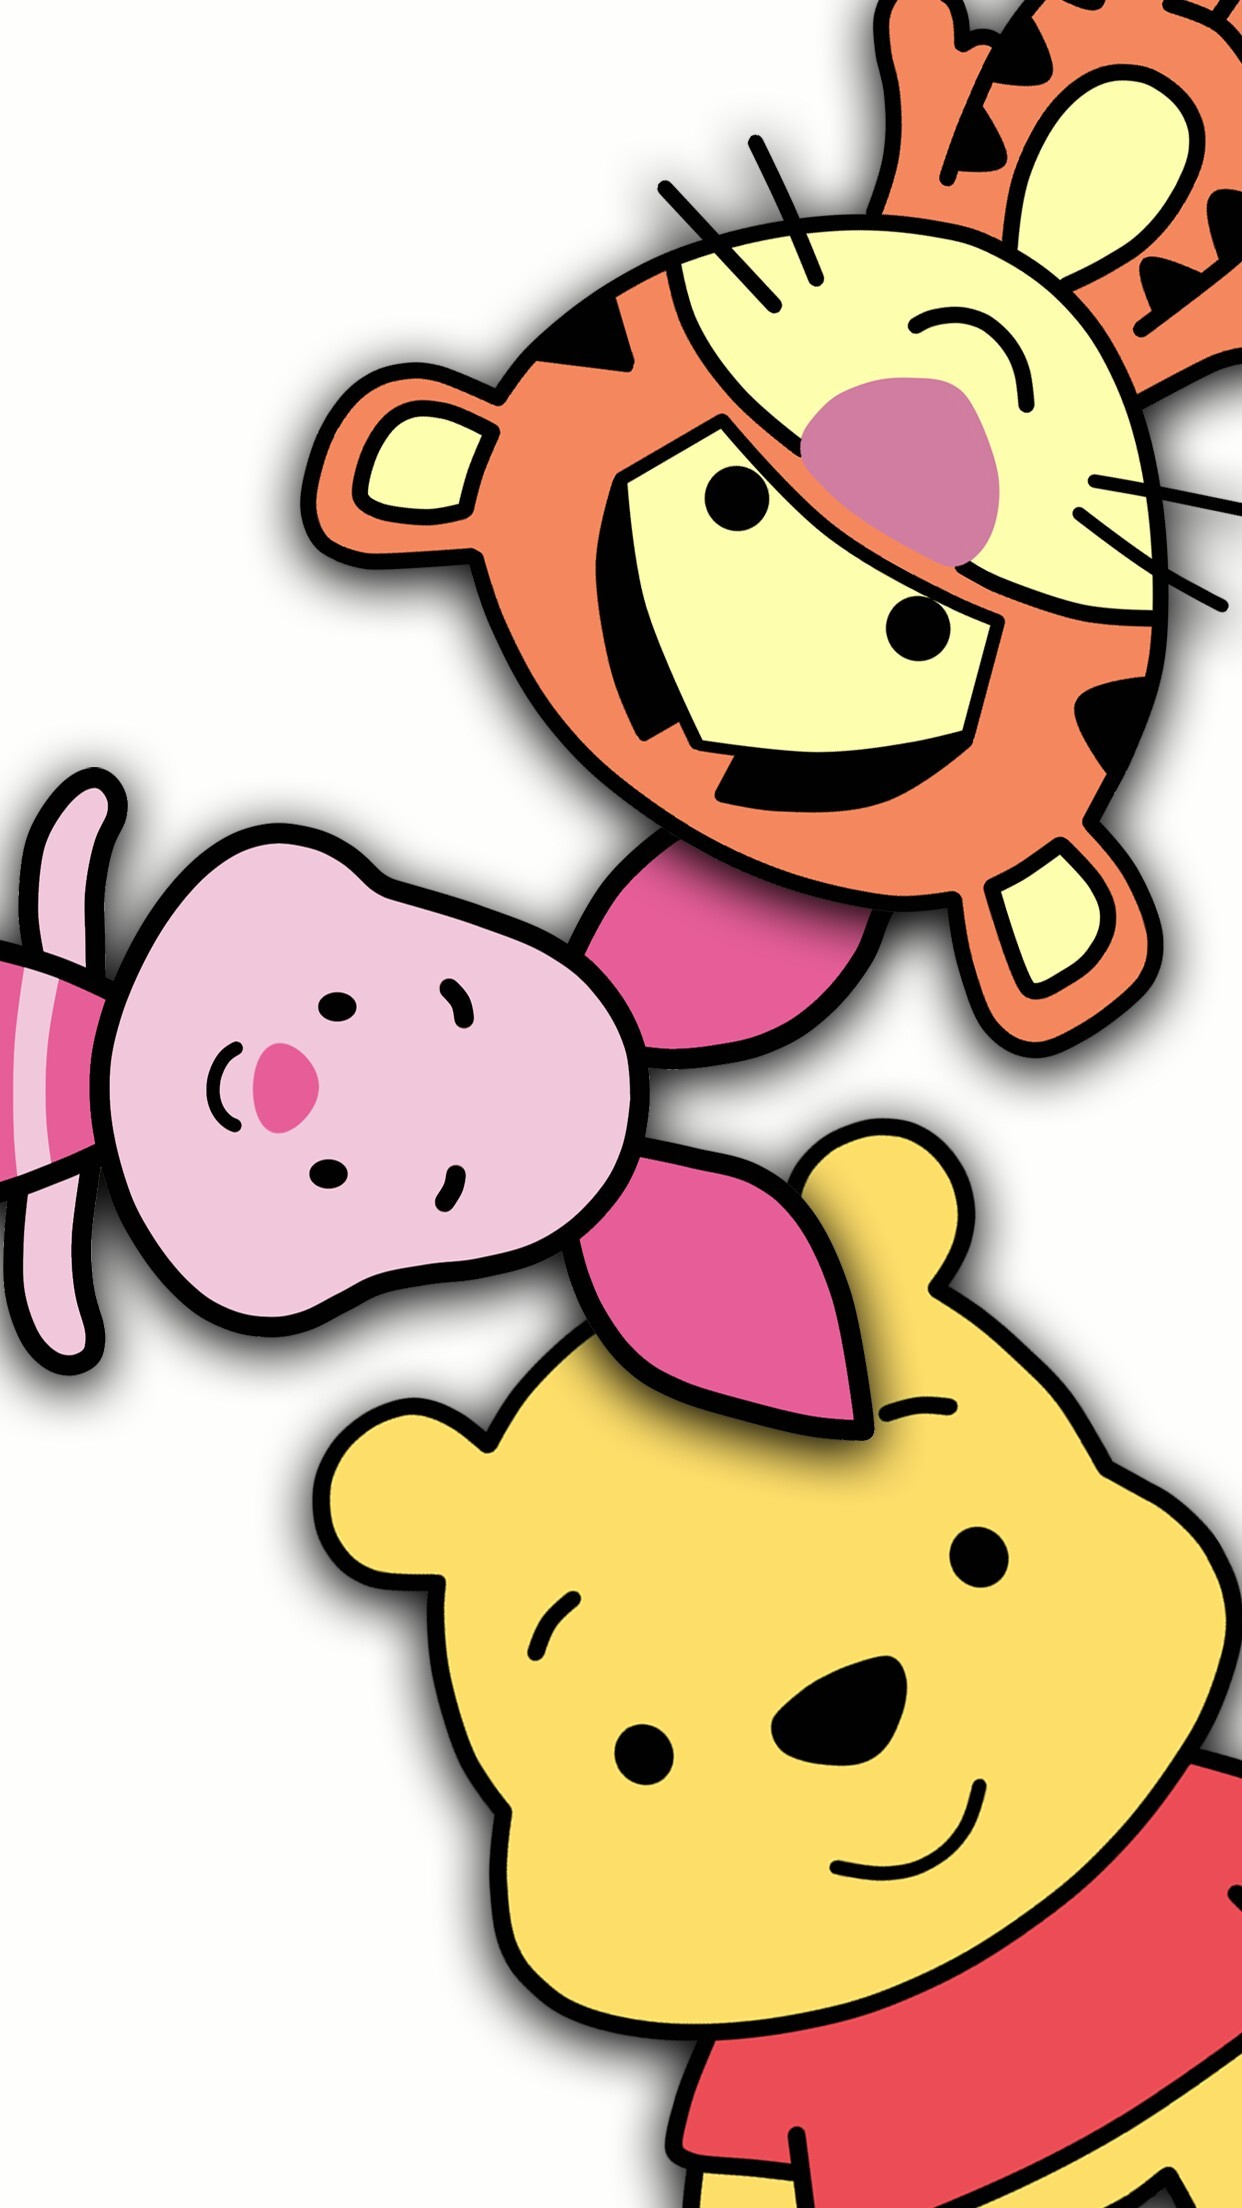 Pooh Bear Wallpapers (64+ Images